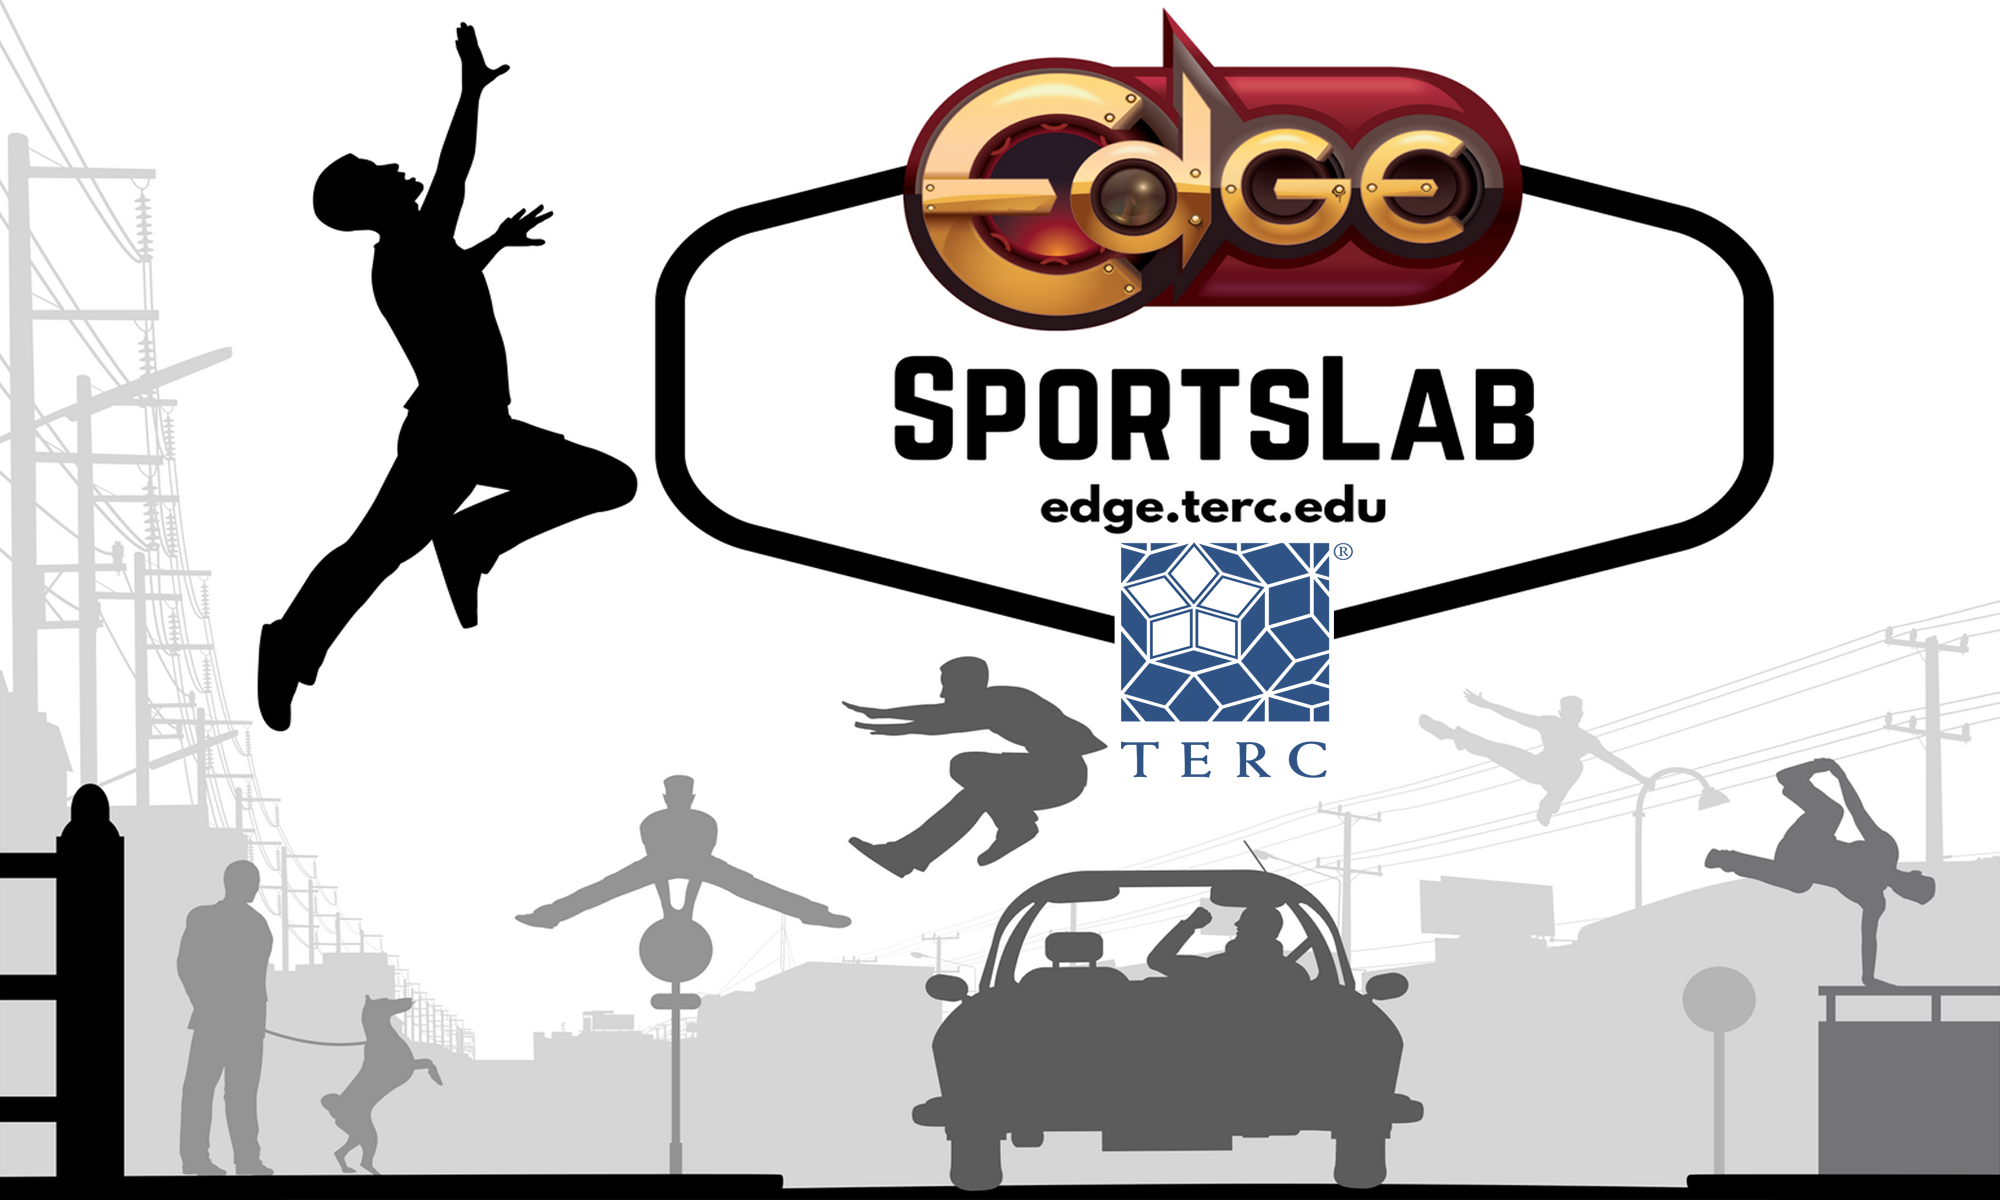 Project SportsLab